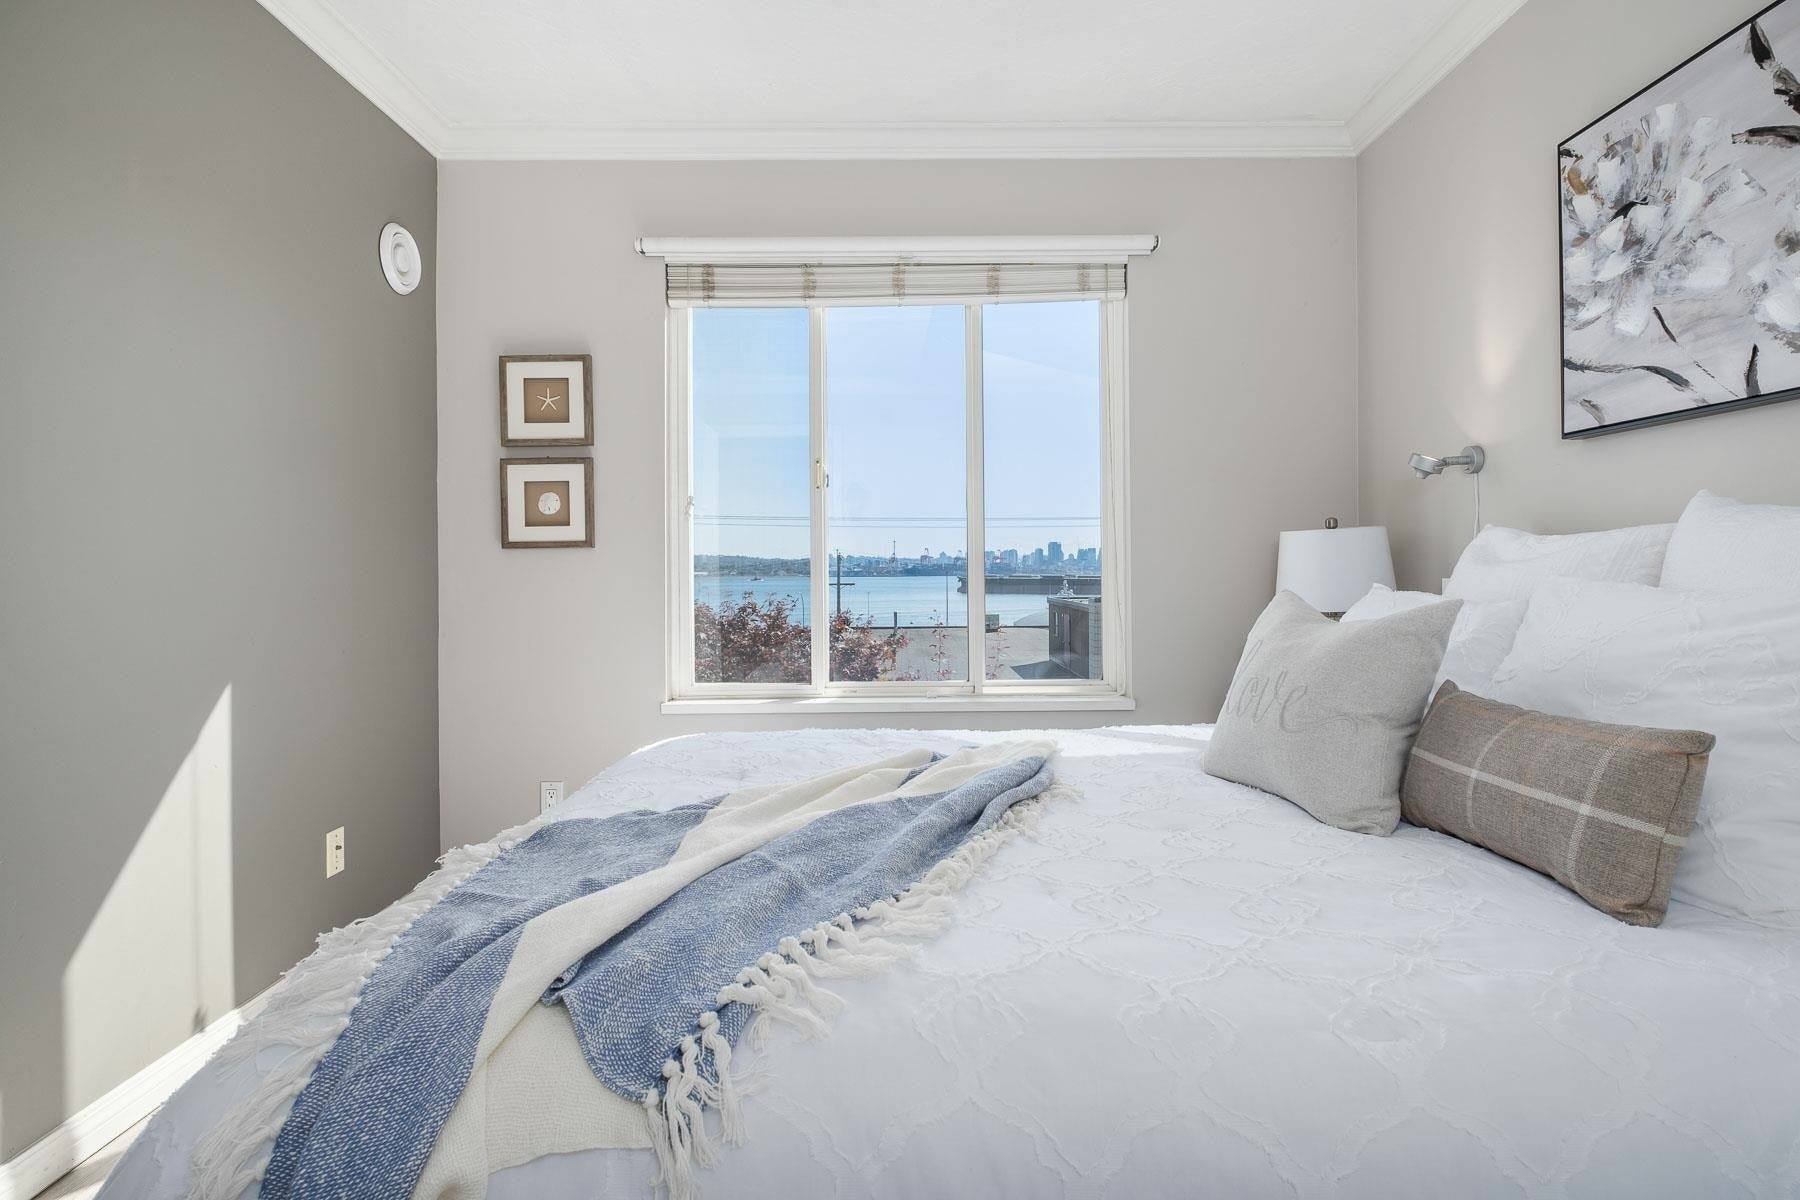 205 333 E 1ST STREET - Lower Lonsdale Apartment/Condo for sale, 1 Bedroom (R2618010) - #21